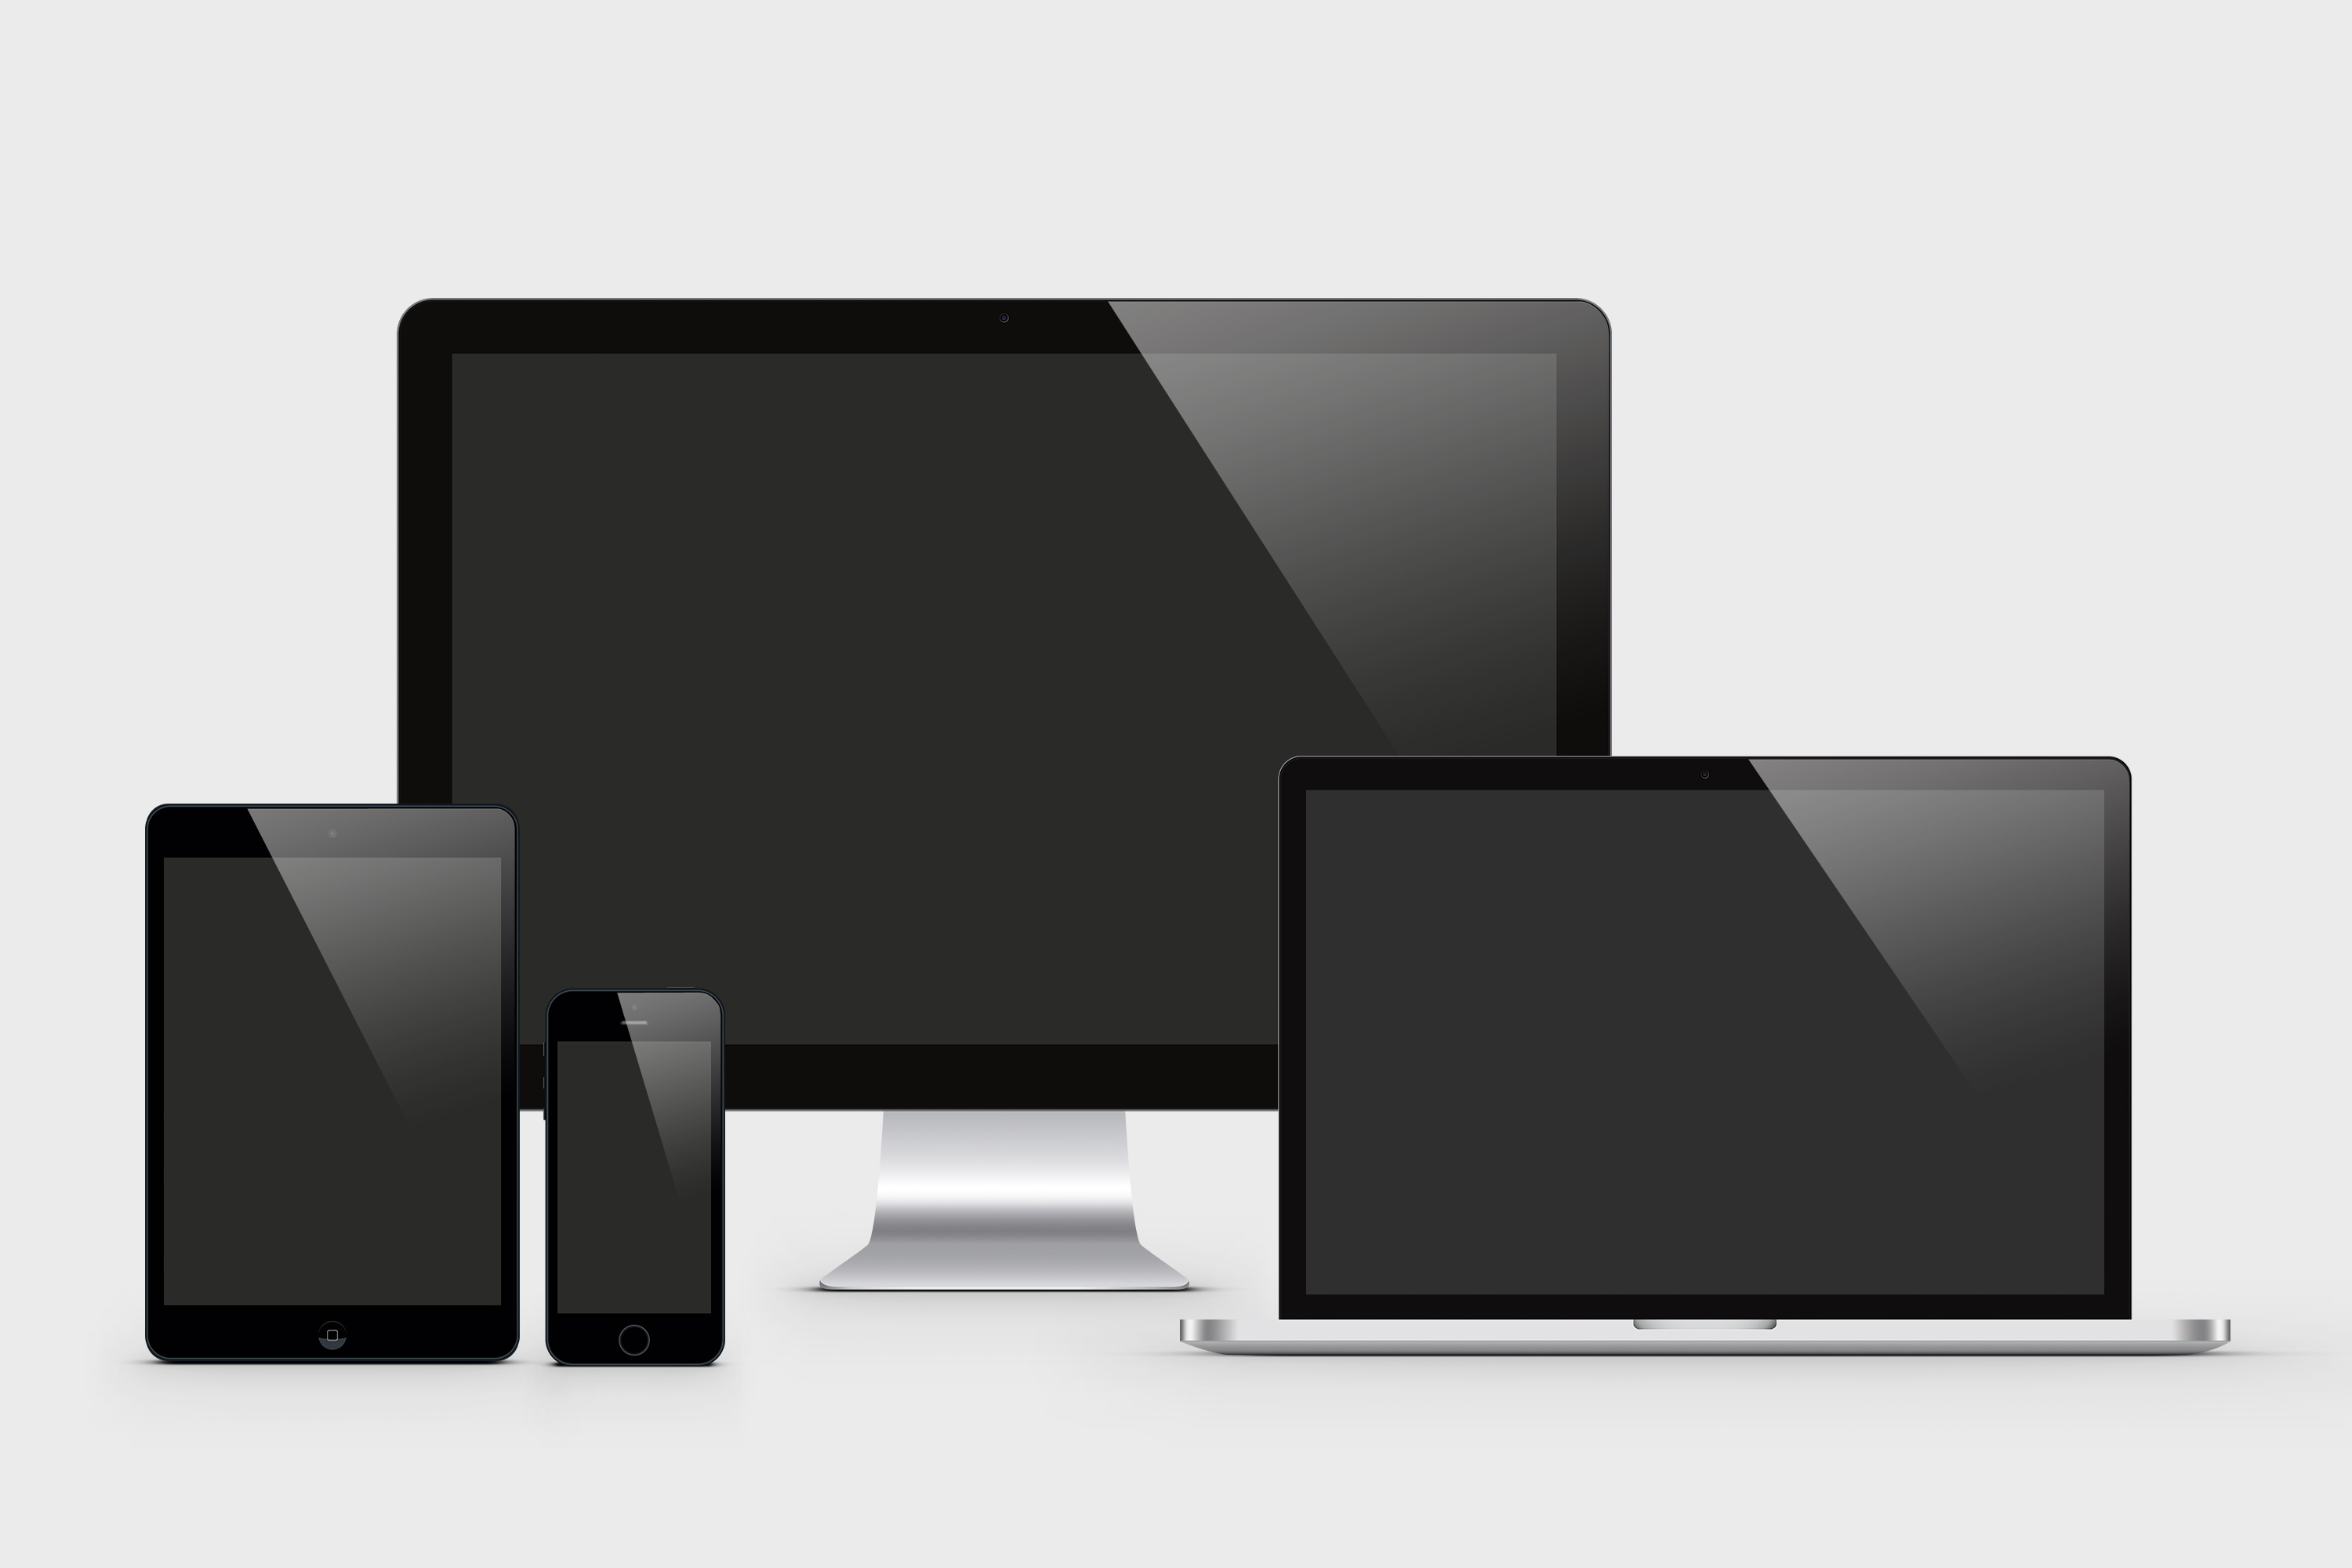 I will do responsive screen mockup